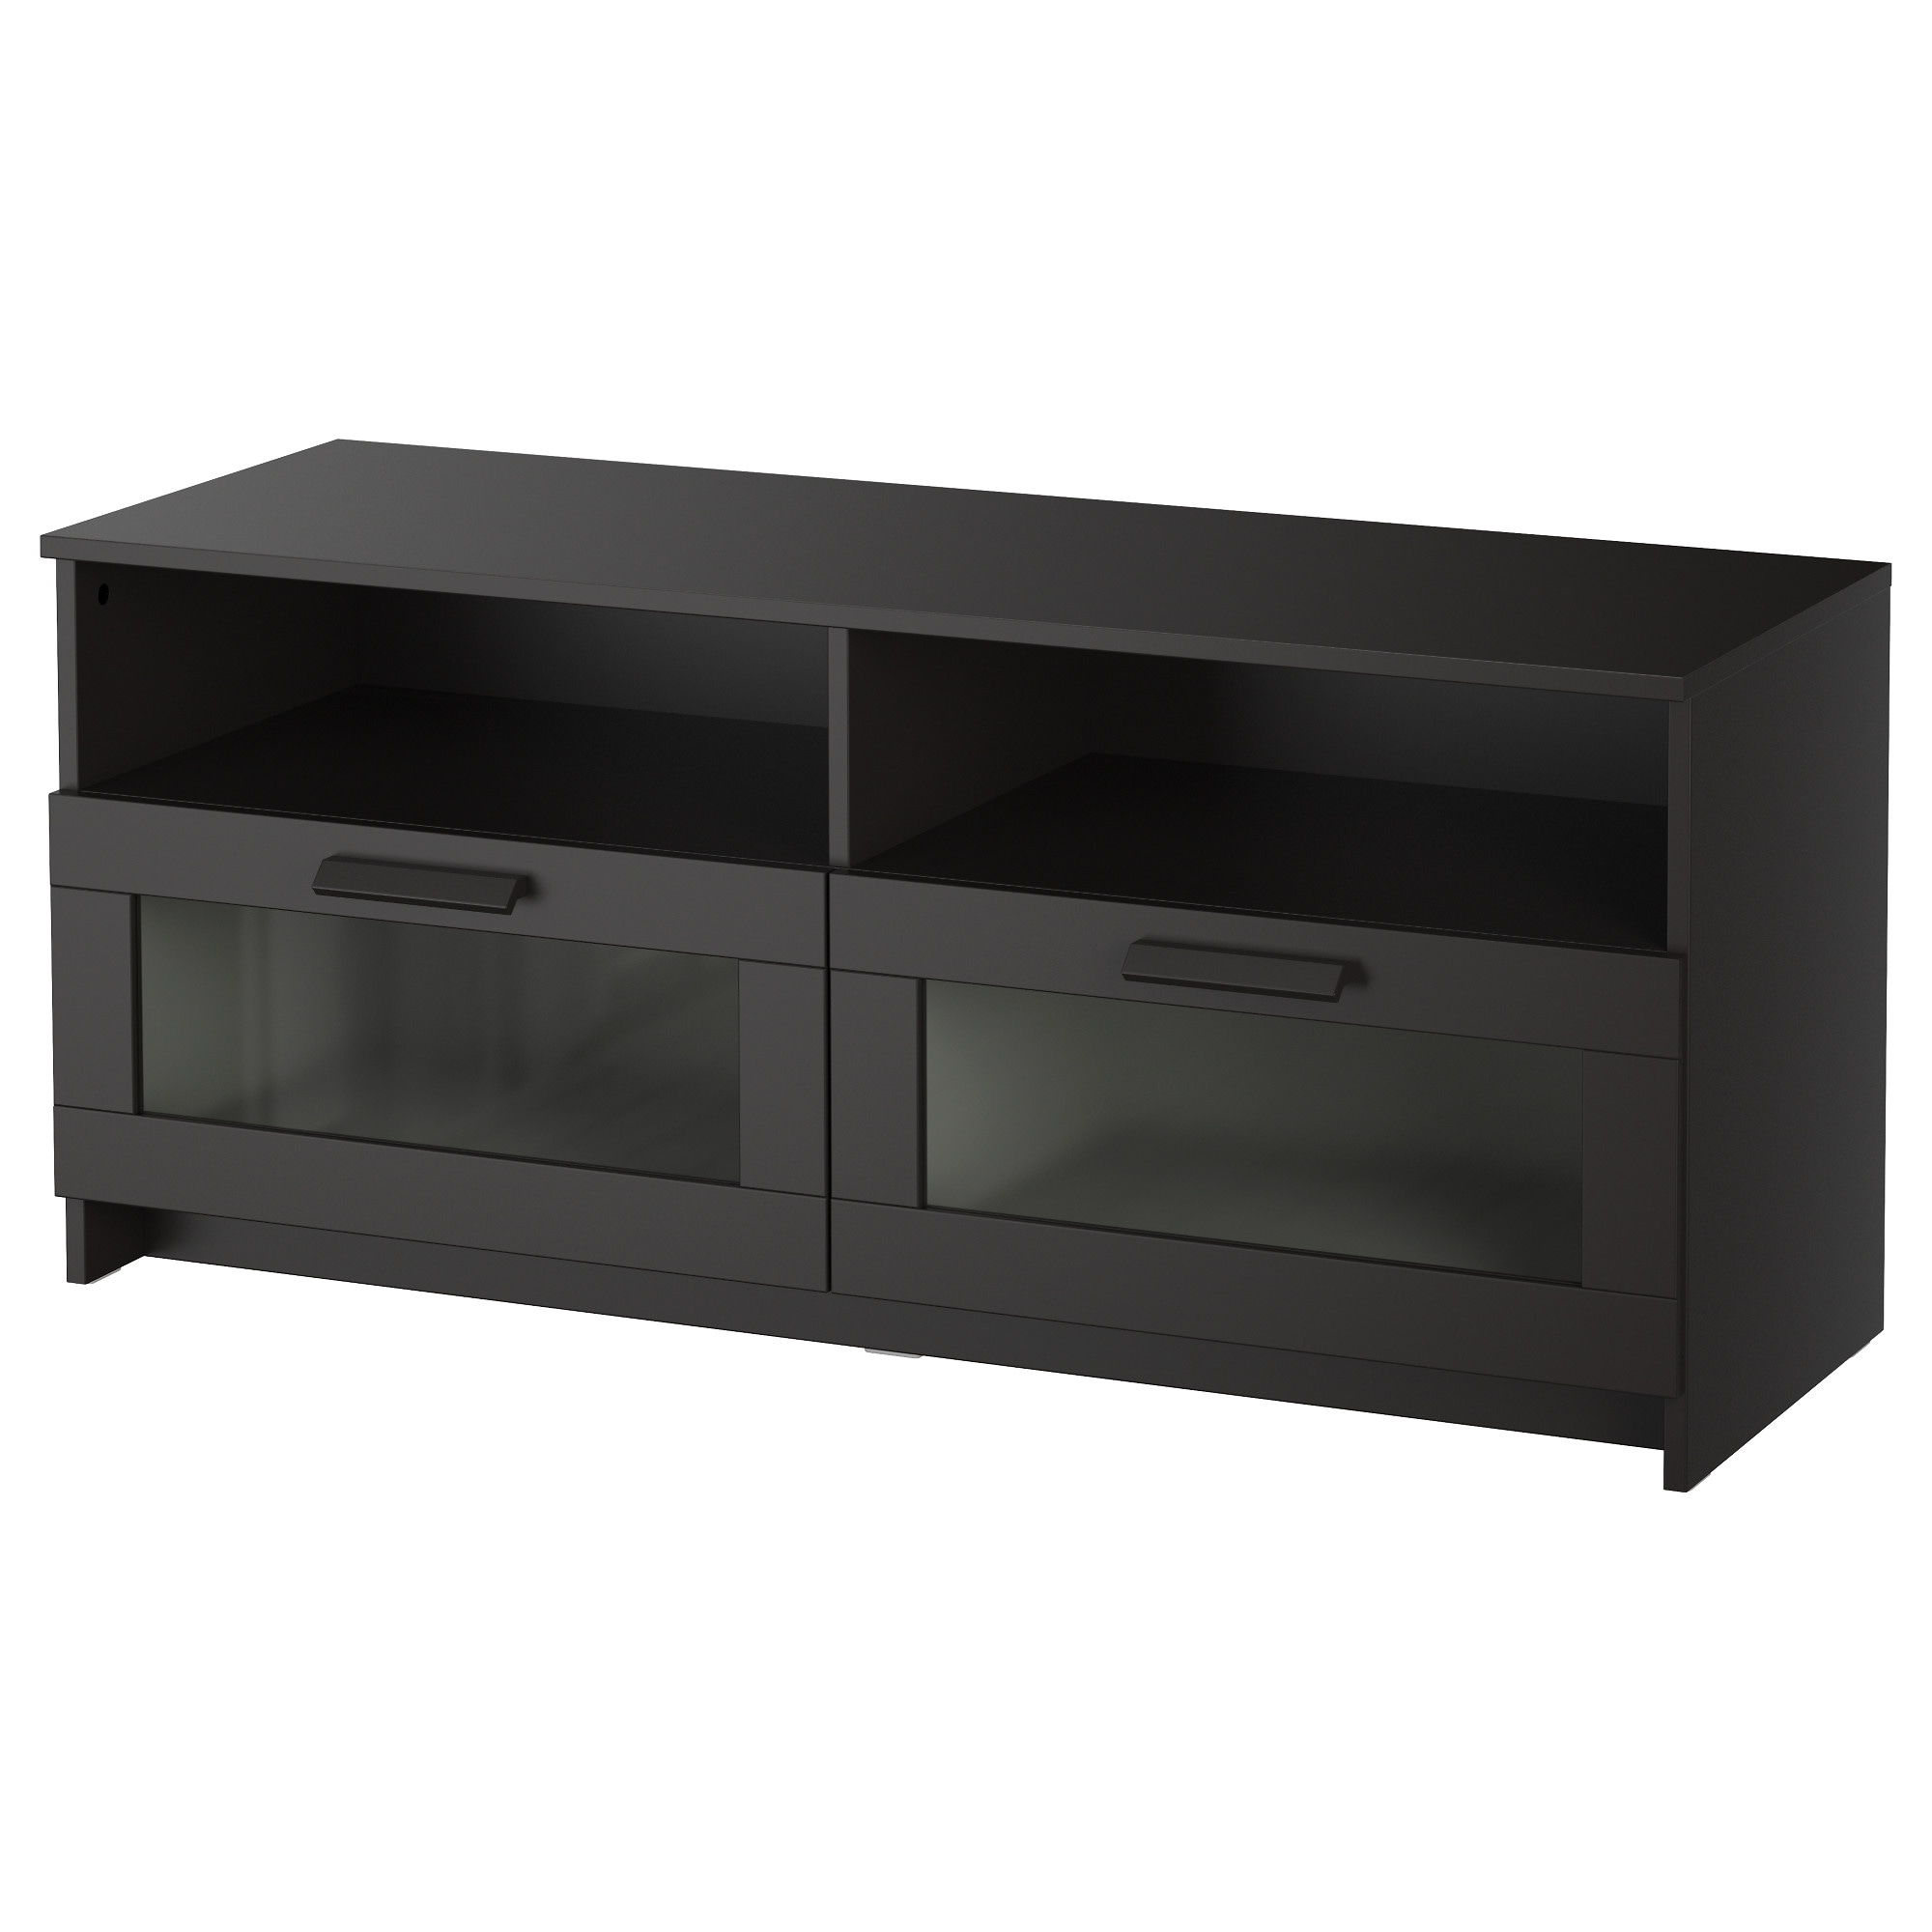 brimnes tv unit - Meuble Tv Metallique Ikea